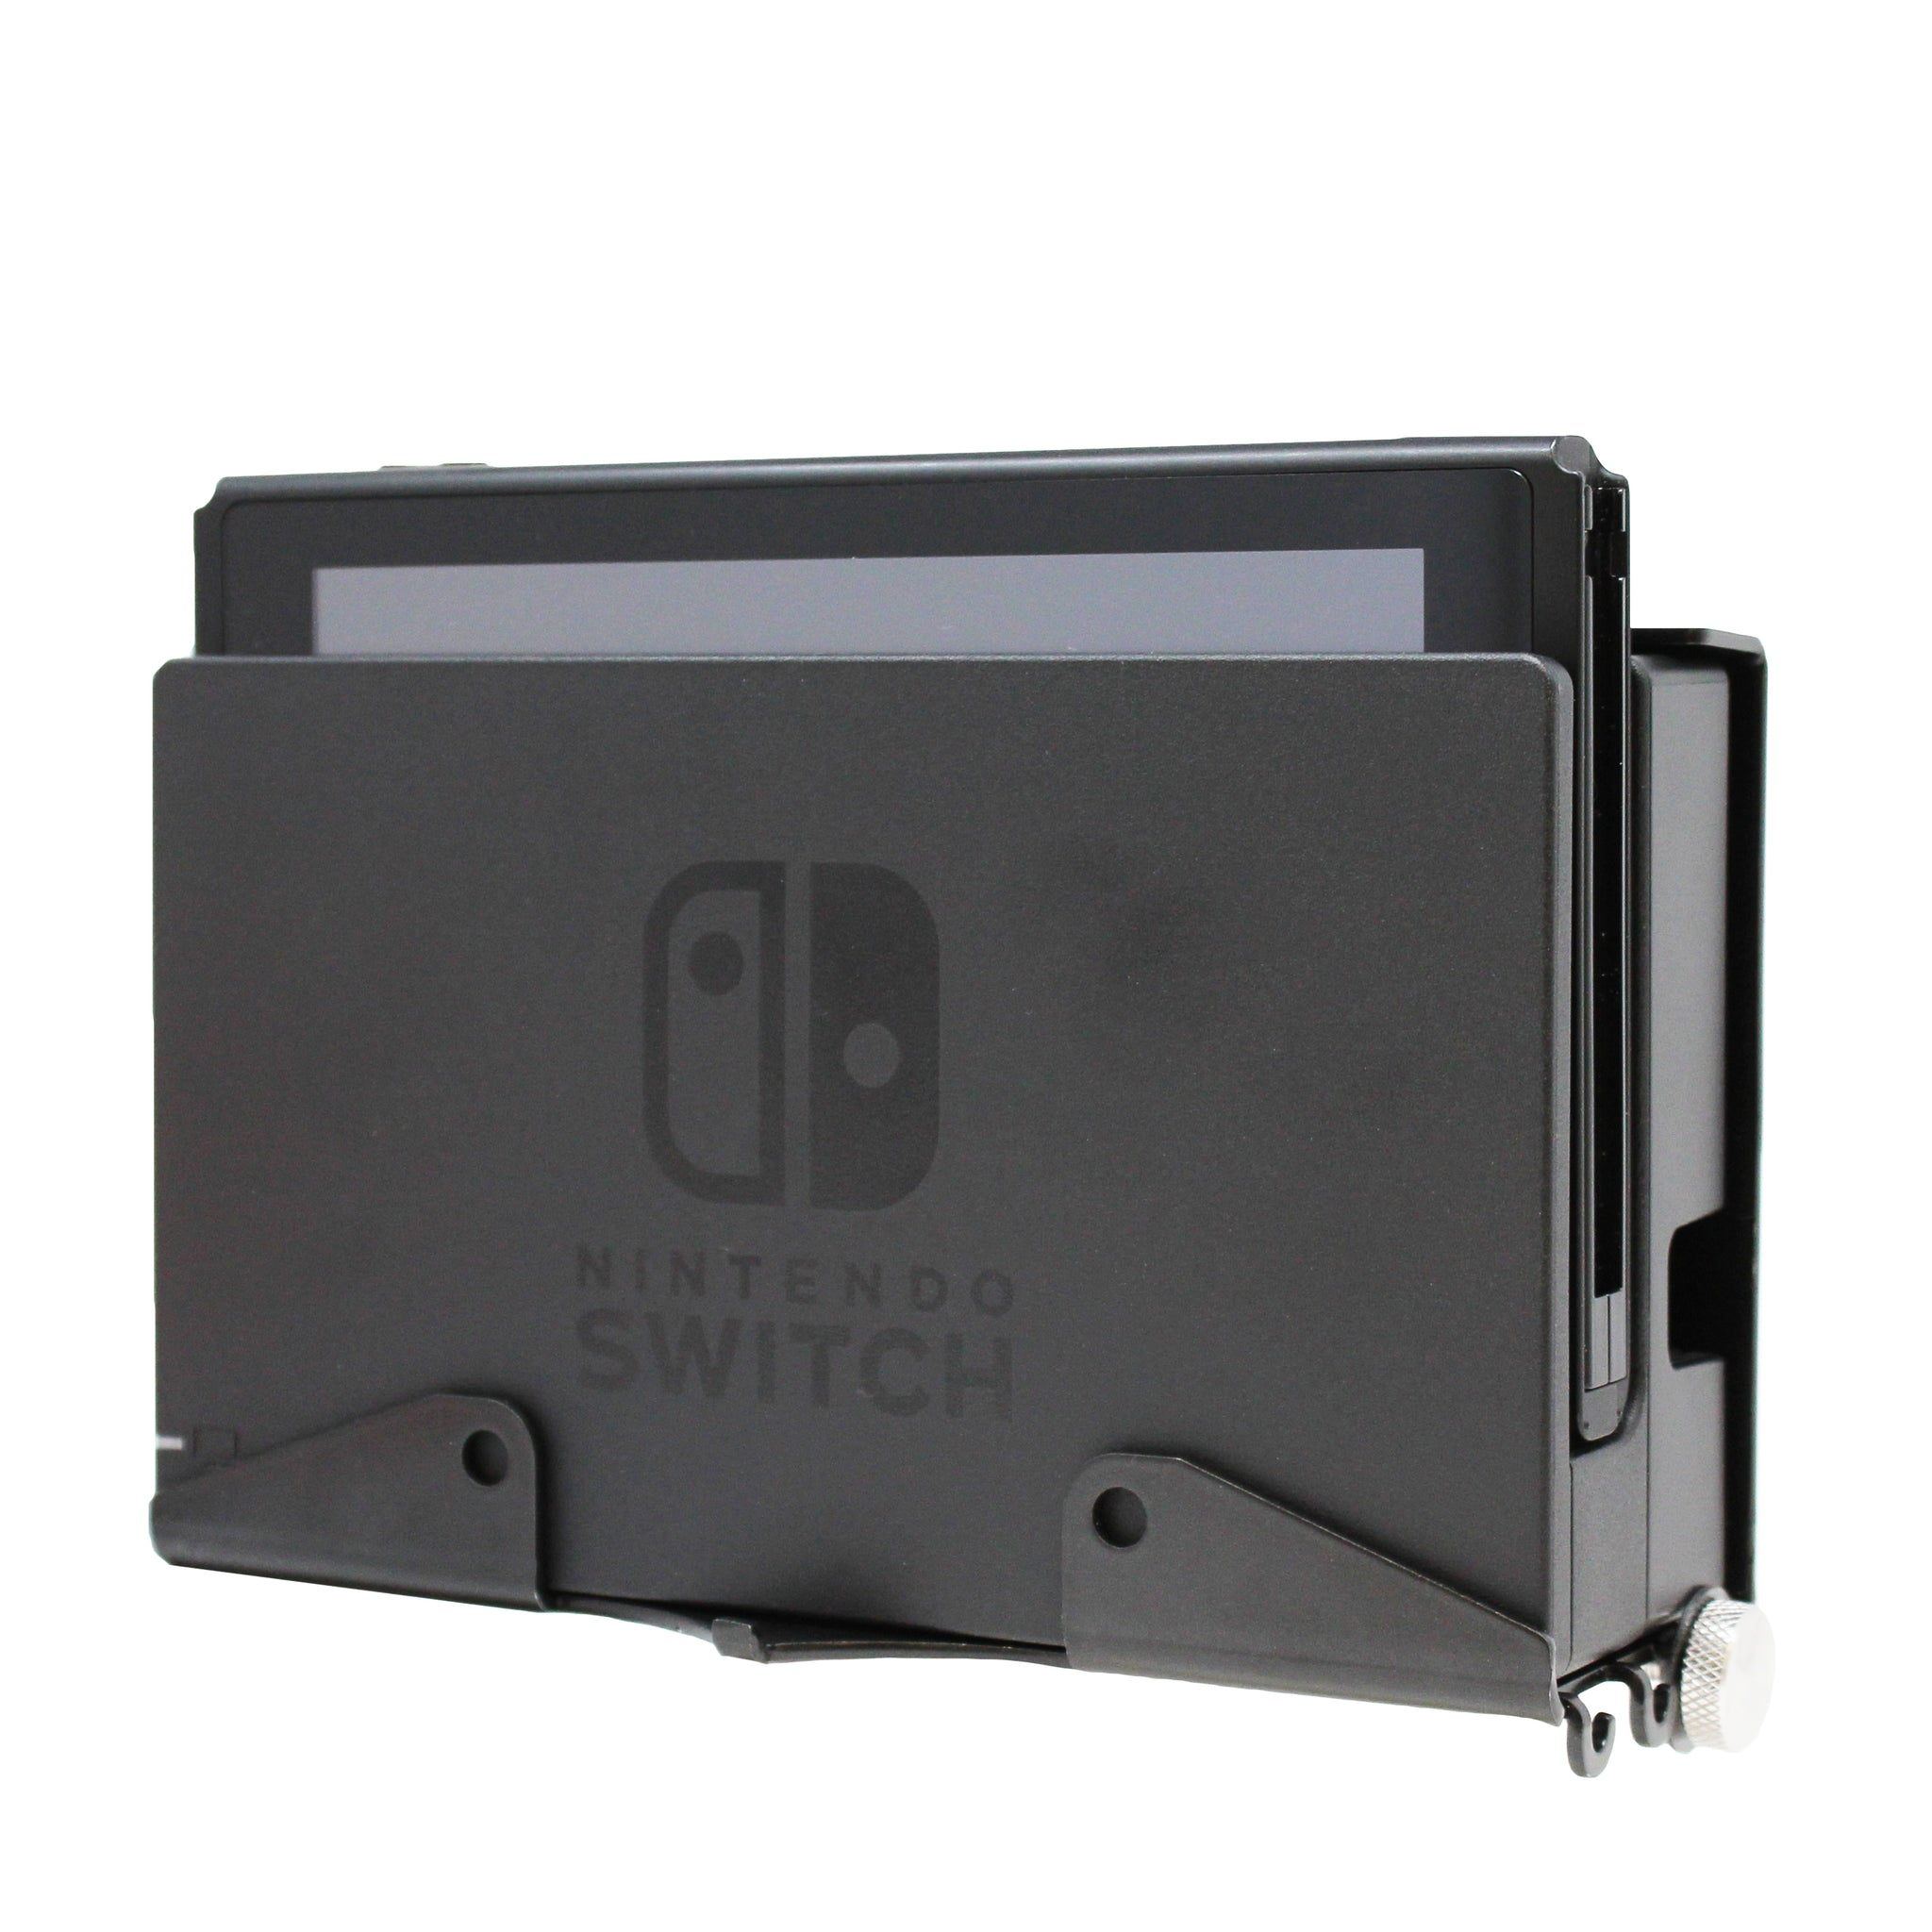 Nintendo Switch Mount